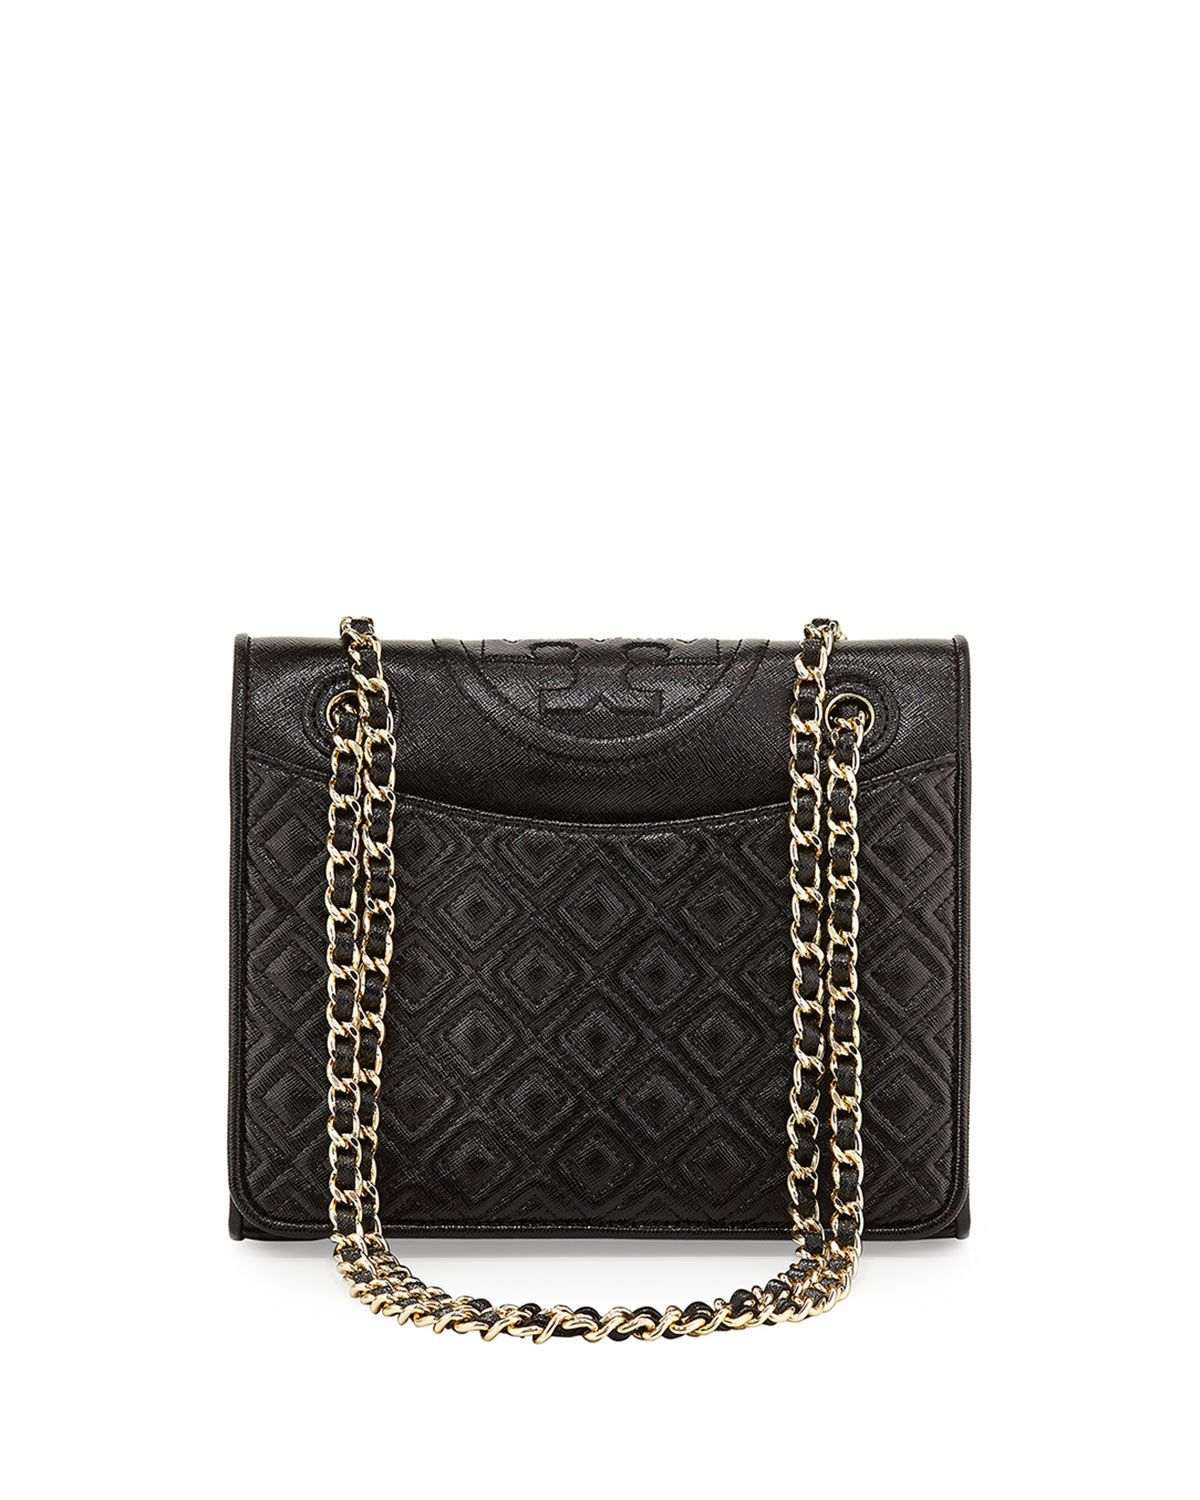 b423ce638ec Fleming Medium Quilted Saffiano Leather Bag Black in 2019 | *Neiman ...